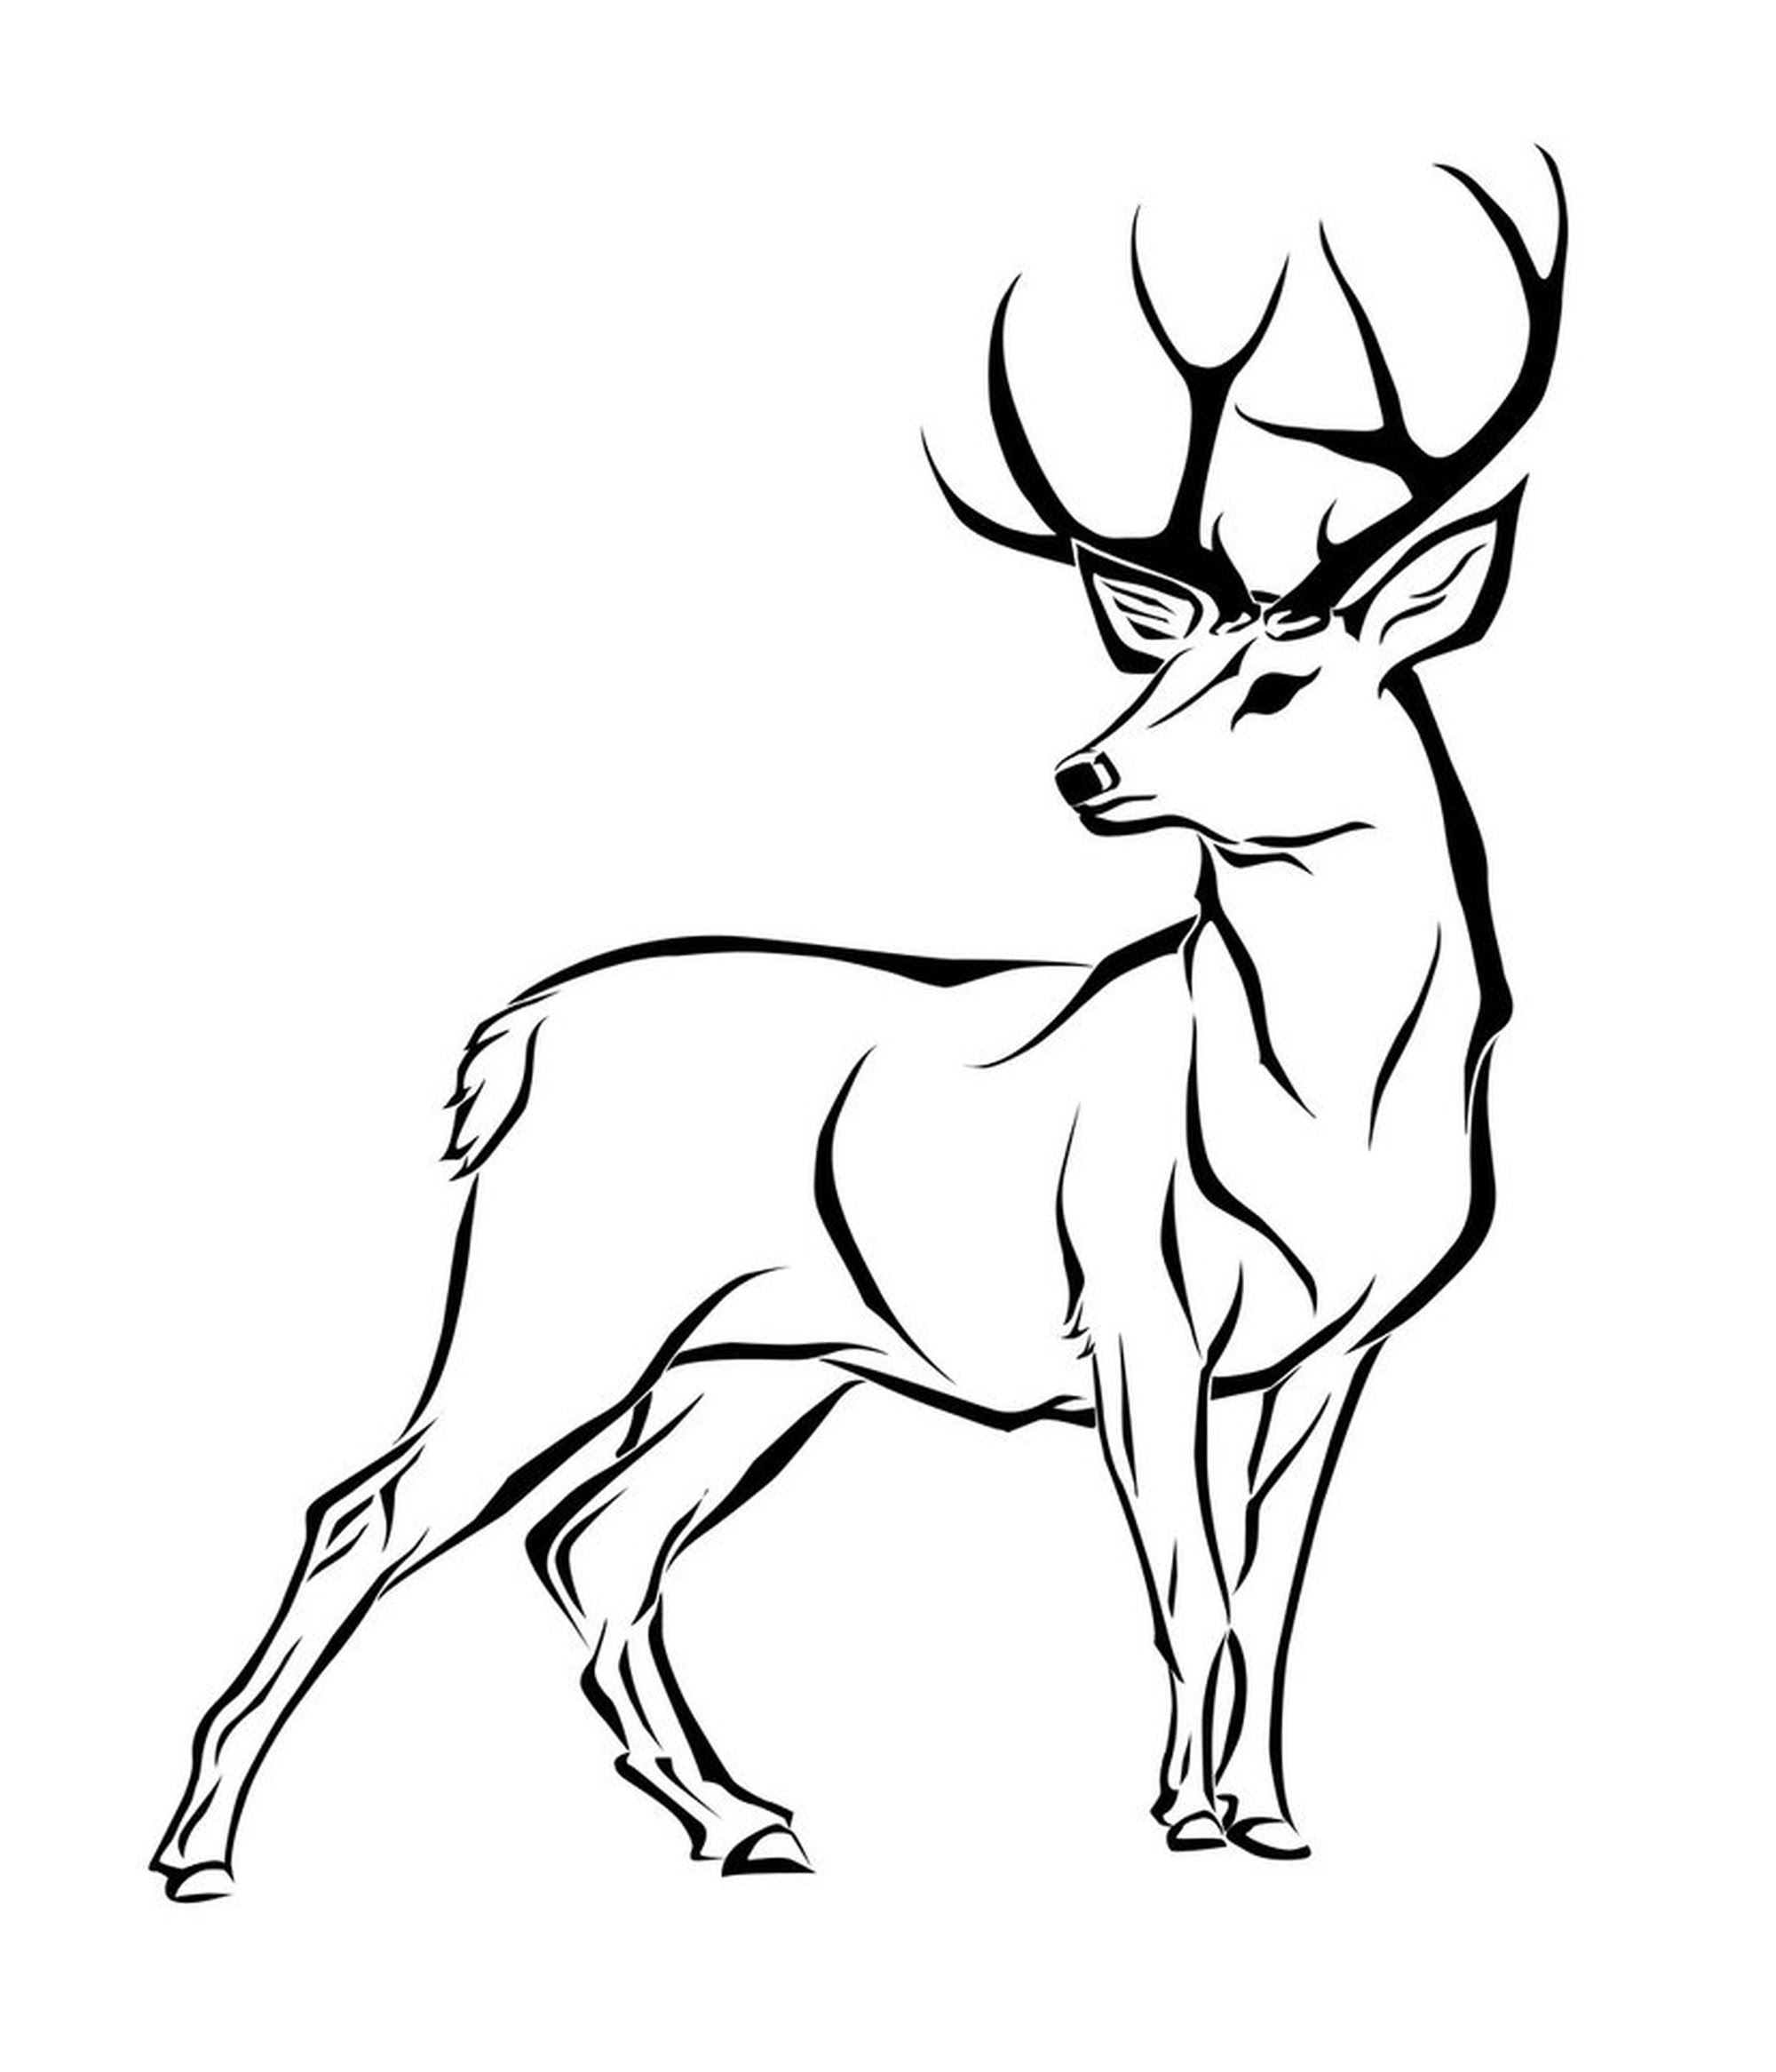 how to draw a deer how to draw a deer step by sketch coloring page how to a deer draw